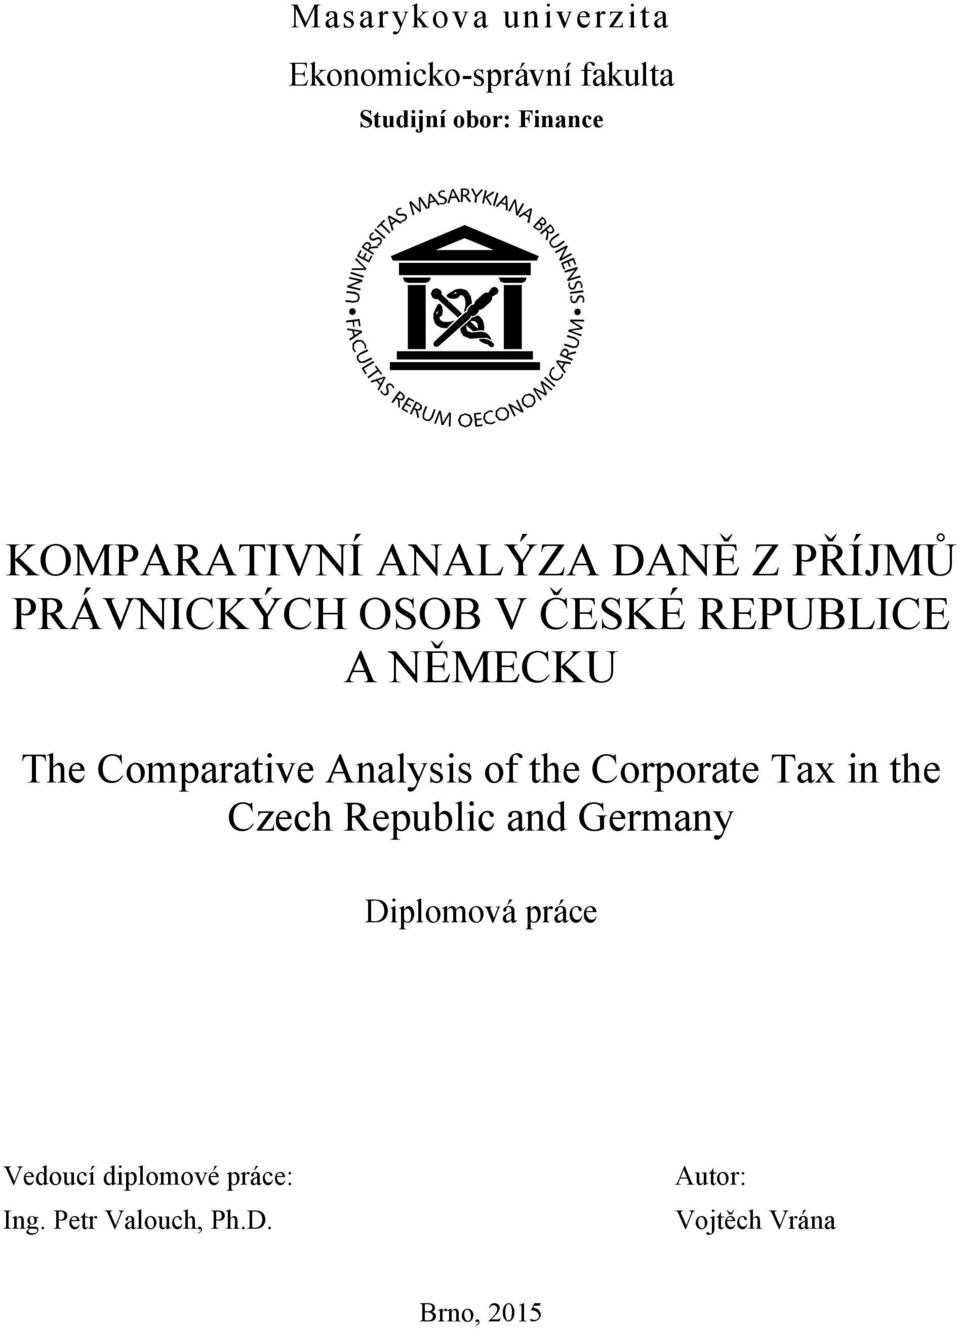 The Comparative Analysis of the Corporate Tax in the Czech Republic and Germany